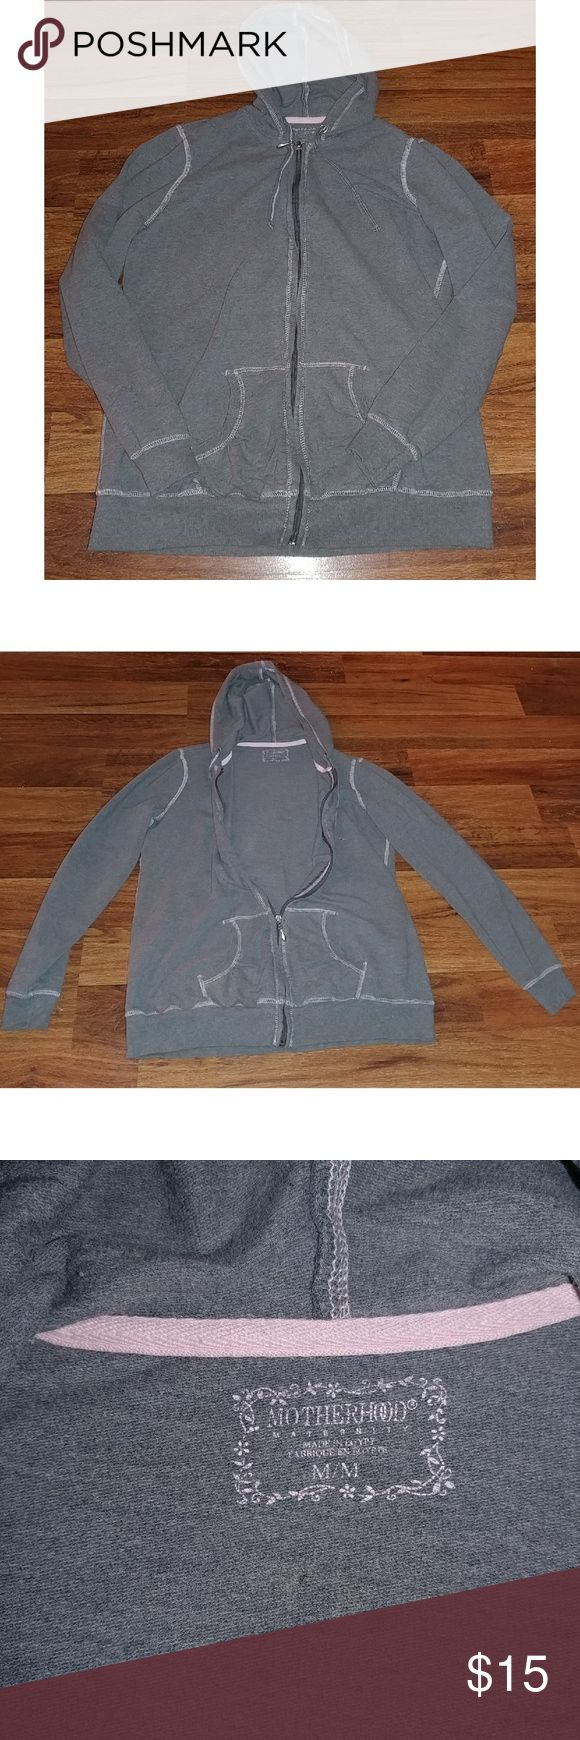 Motherhood Maternity Zip Up Hoodie Medium This light gray Motherhood Maternity Hoodie has light pink stitching and is a size medium. There is a pocket on the bottom on either side and it has a zipper. Very comfortable!  I usually ship the next day! Motherhood Maternity Tops Sweatshirts & Hoodies